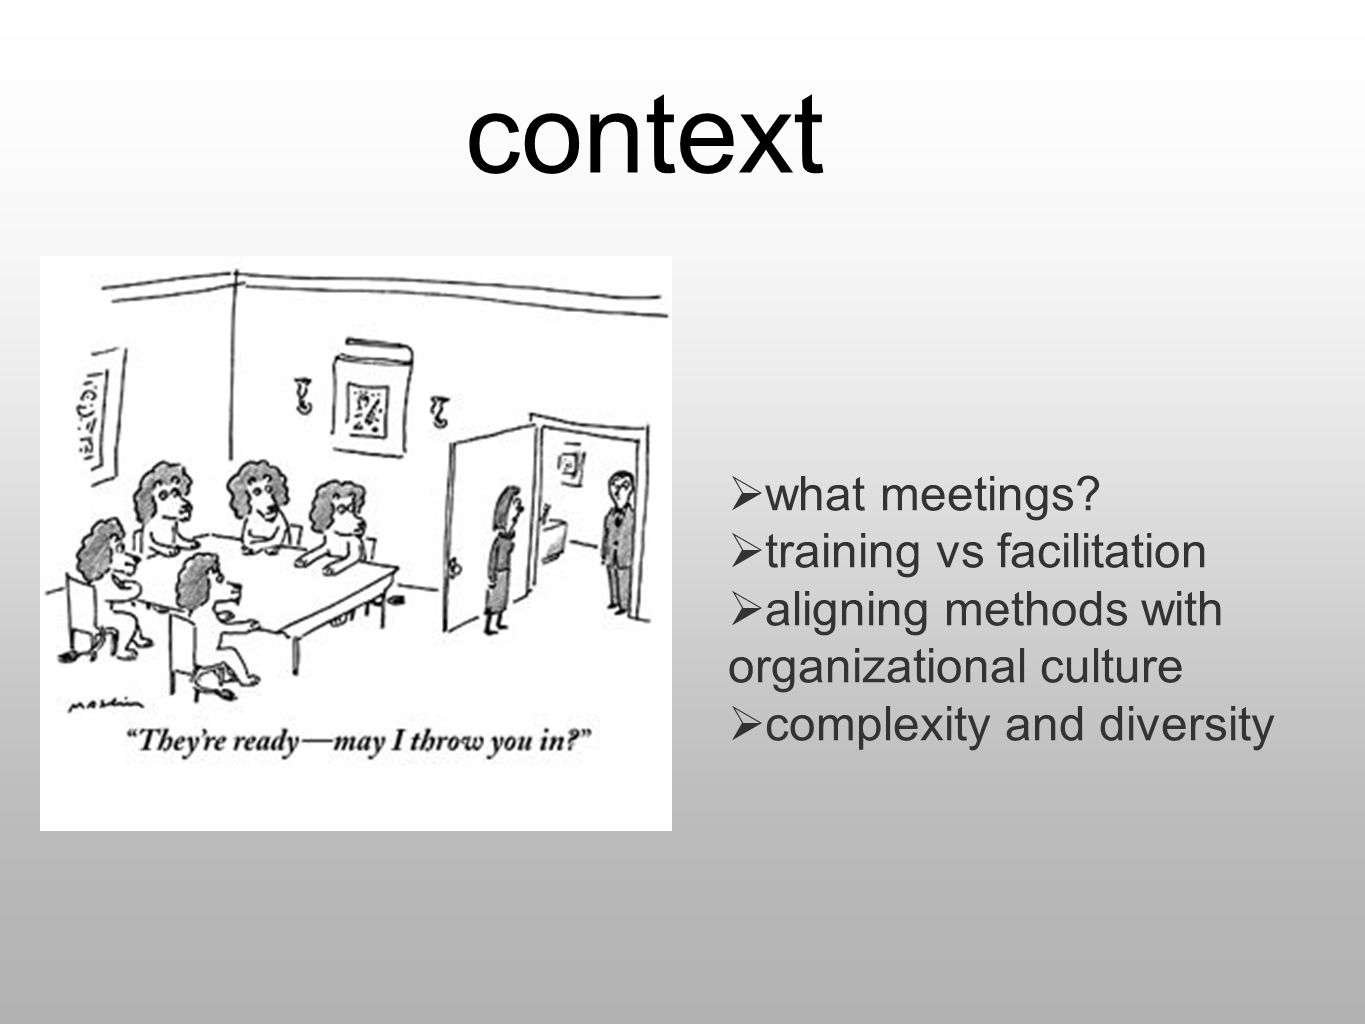 context what meetings? training vs facilitation aligning methods with organizational culture complexity and diversity